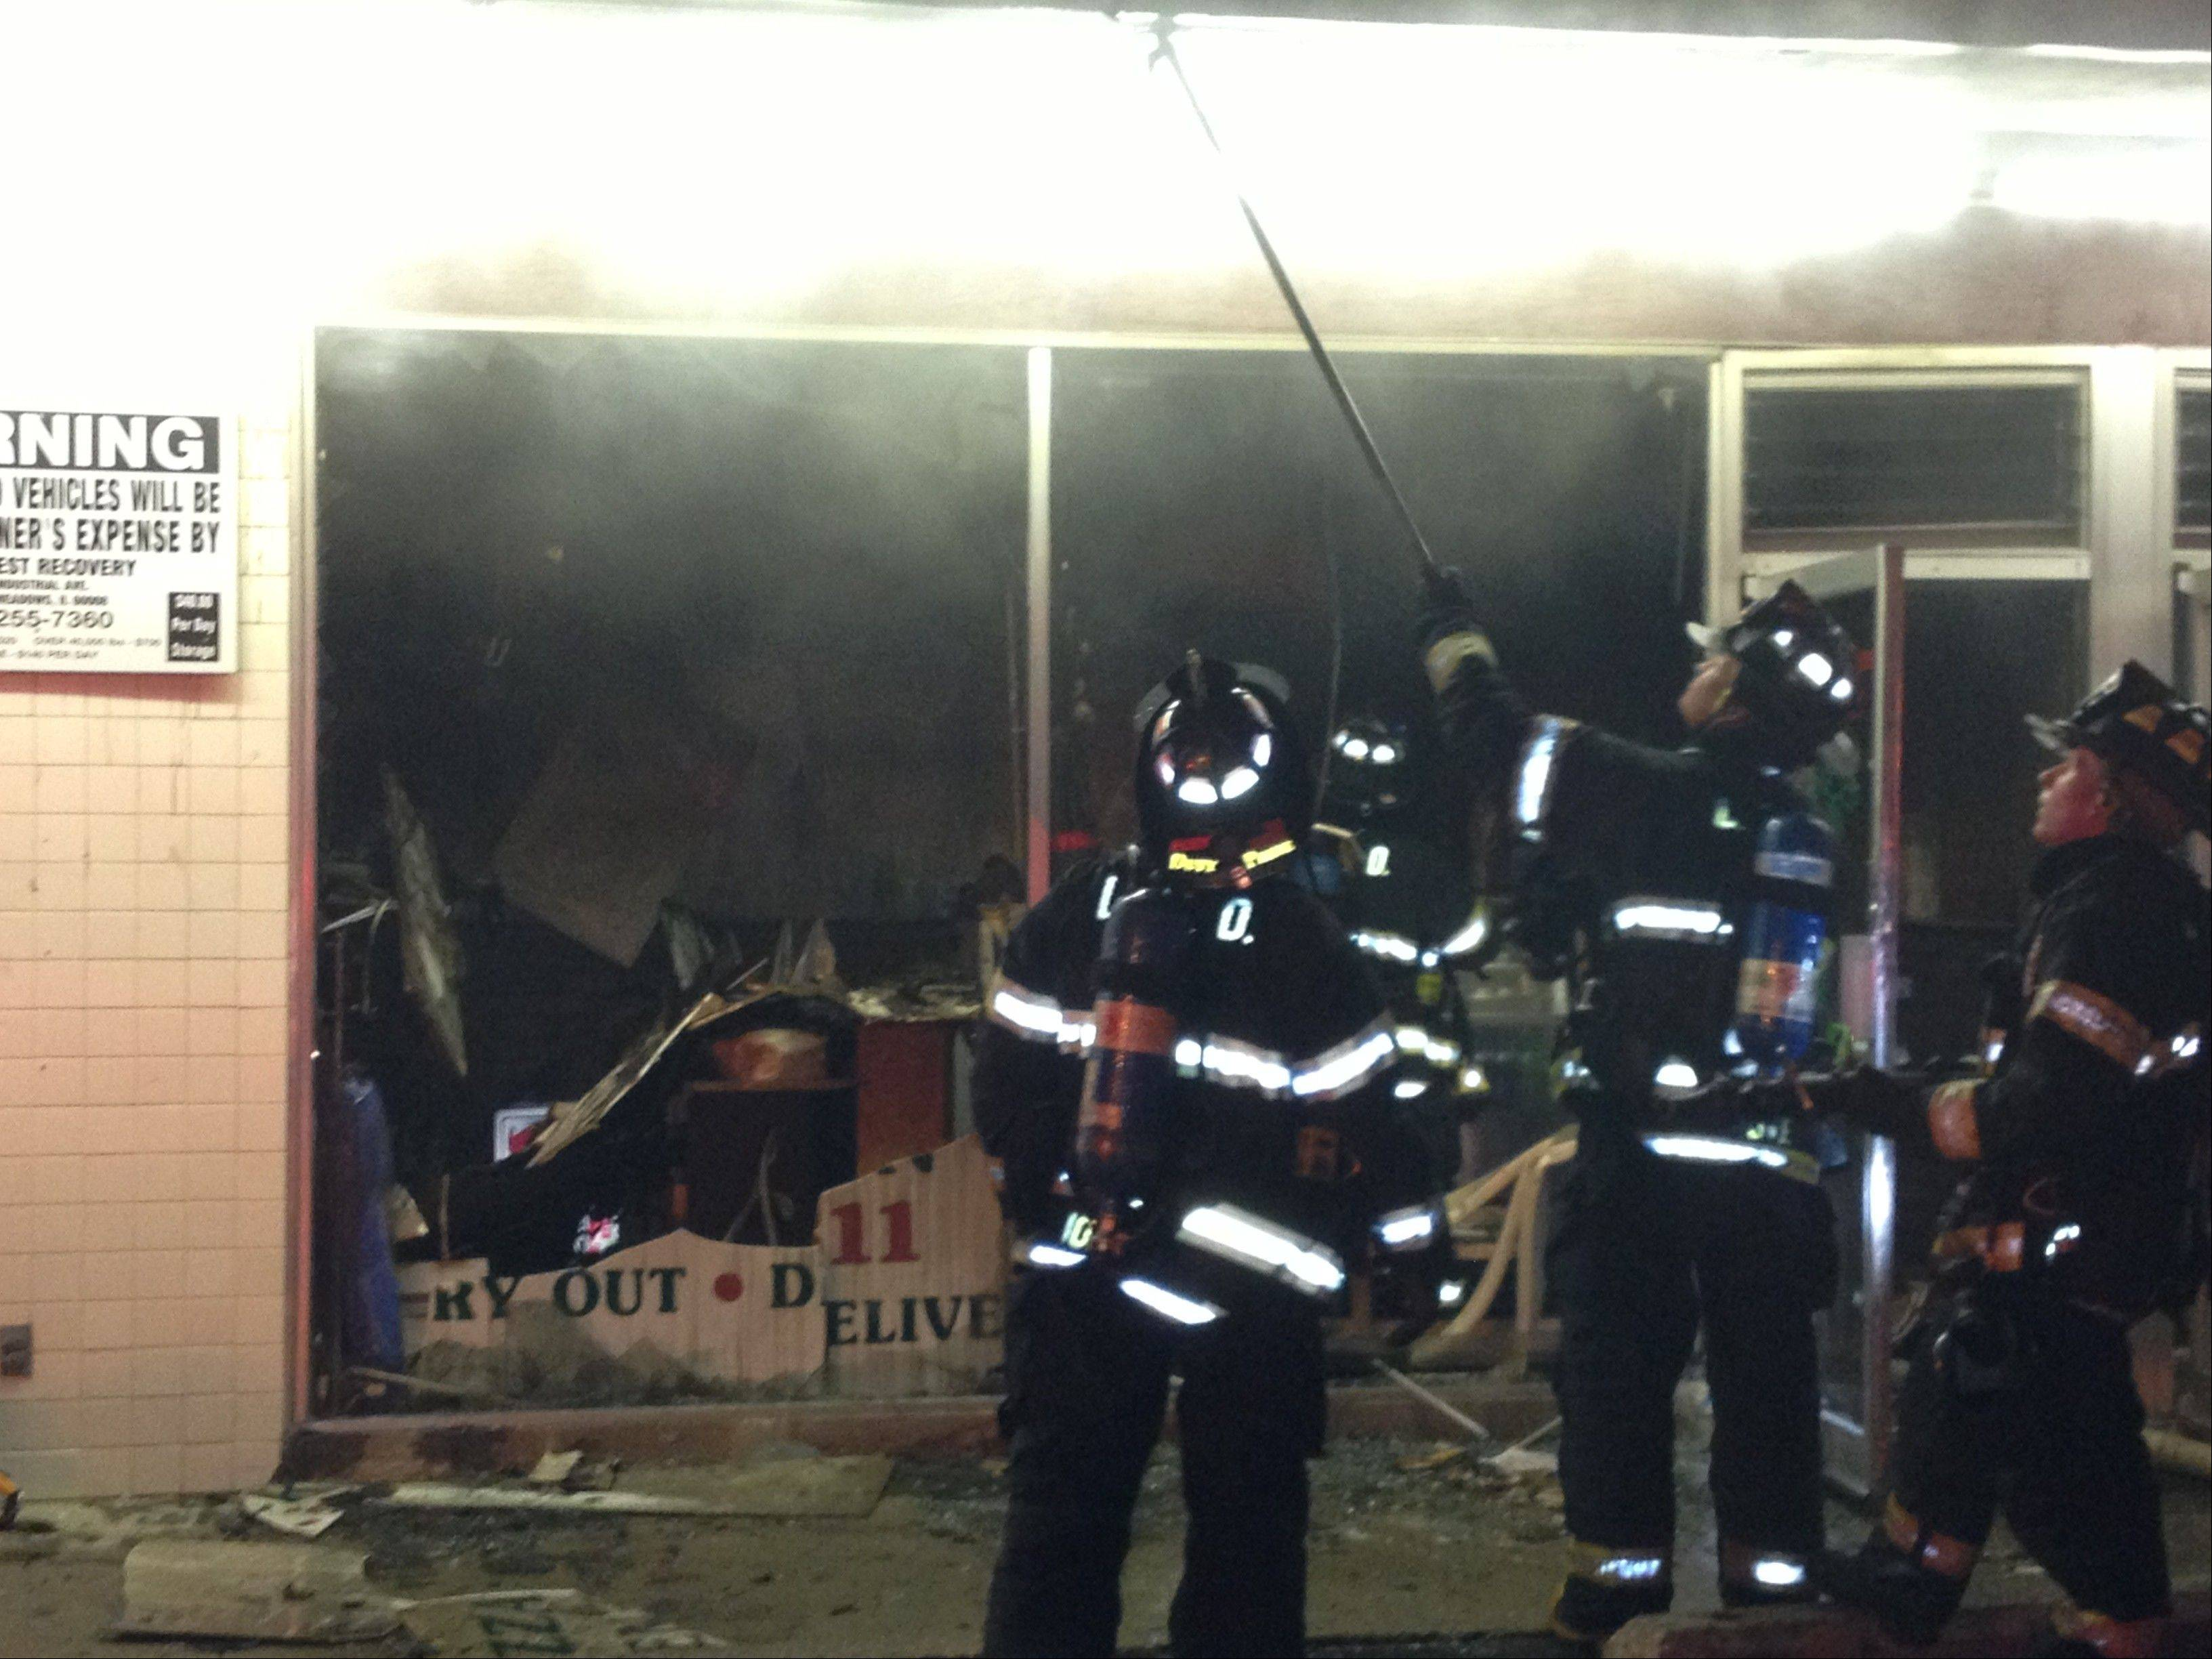 Des Plaines firefighters Wednesday battled an early morning blaze that engulfed Mugavero's Pizza & Ribs, 600 Central Road in Des Plaines. No one was injured but the restaurant suffered extensive damage and will remain closed for some time, officials said.